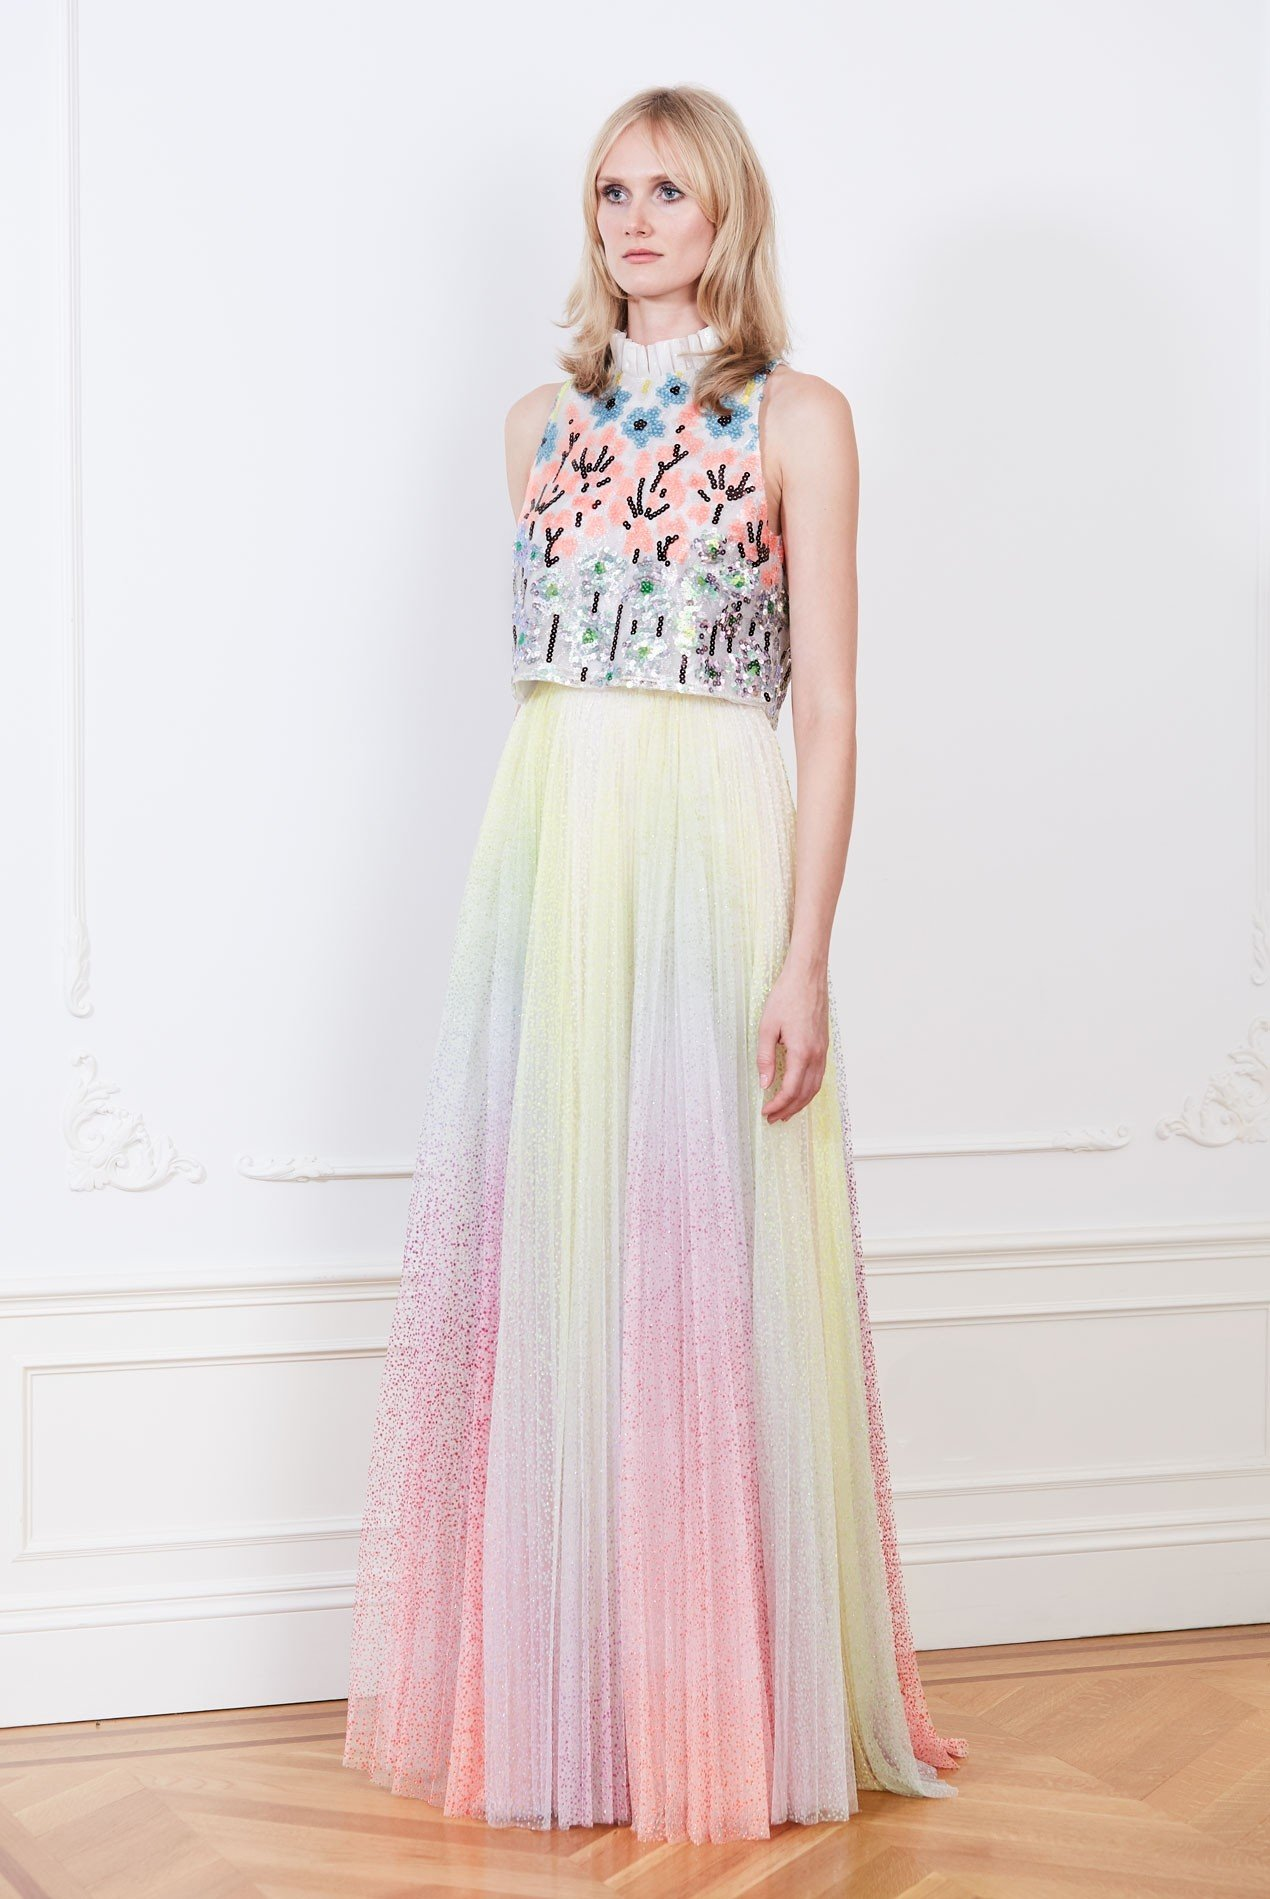 Botanical sequin cropped top over rainbow pleated tulle maxi skirt